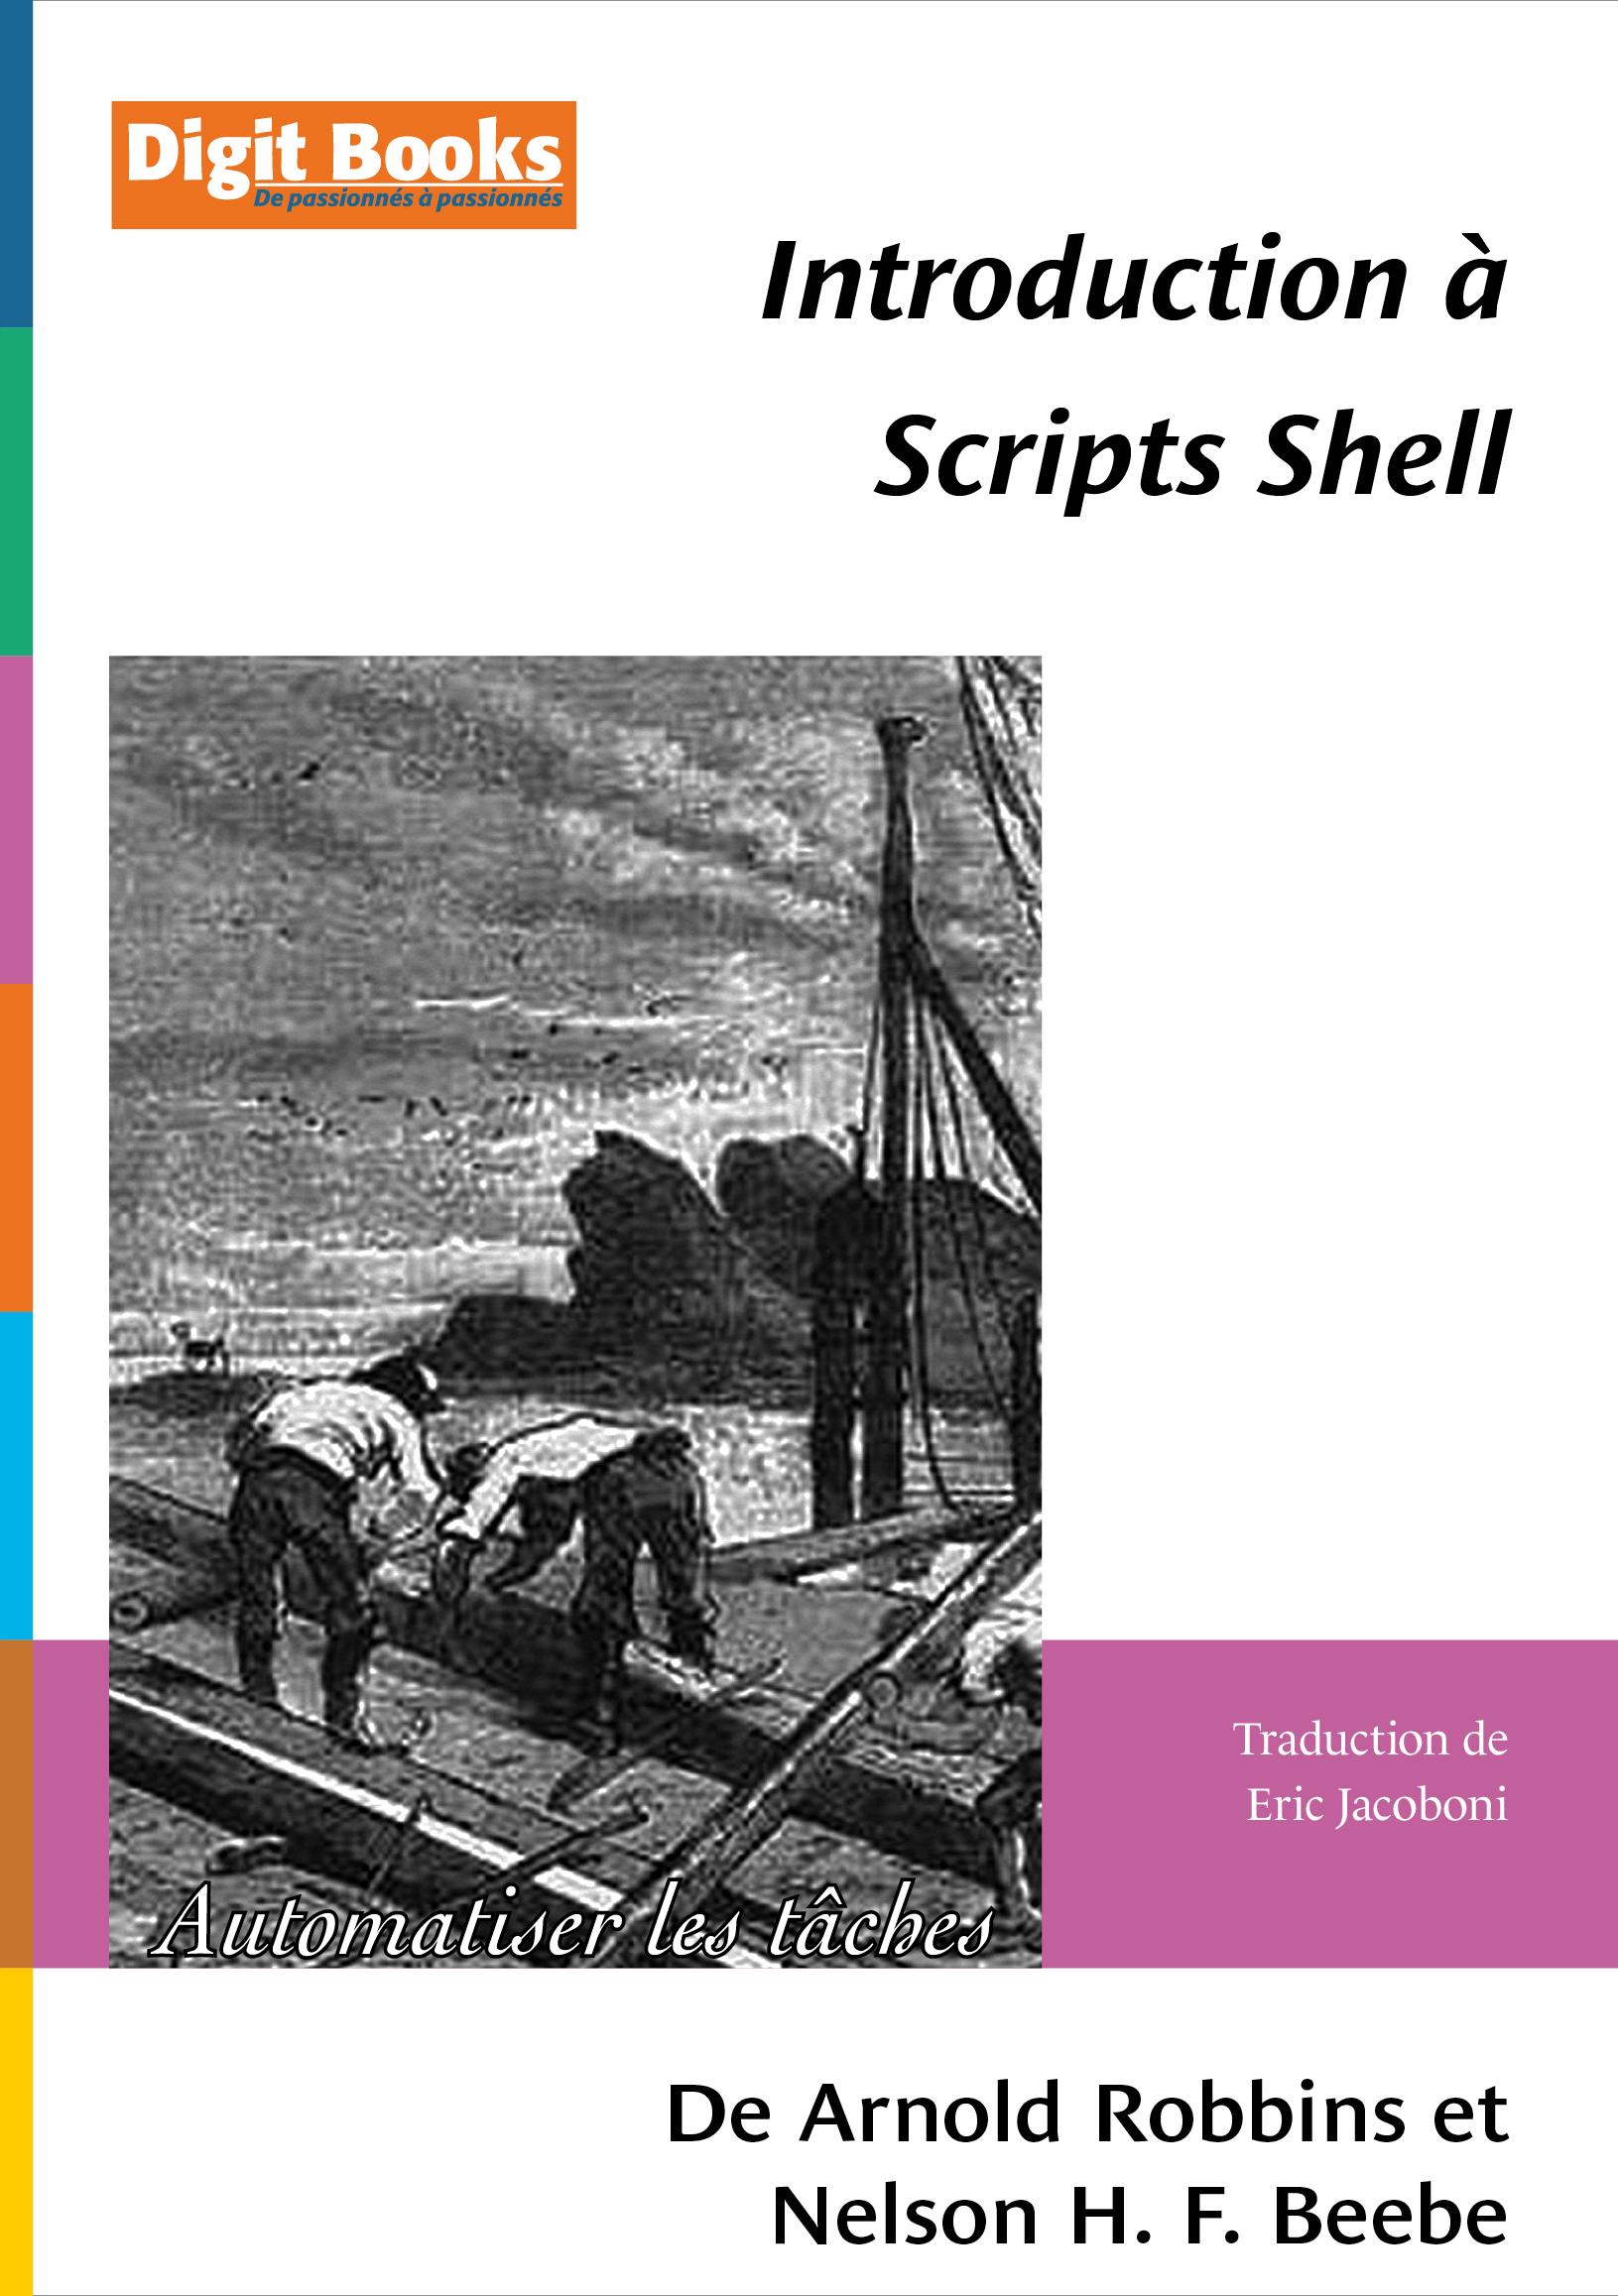 Introduction aux scripts shell